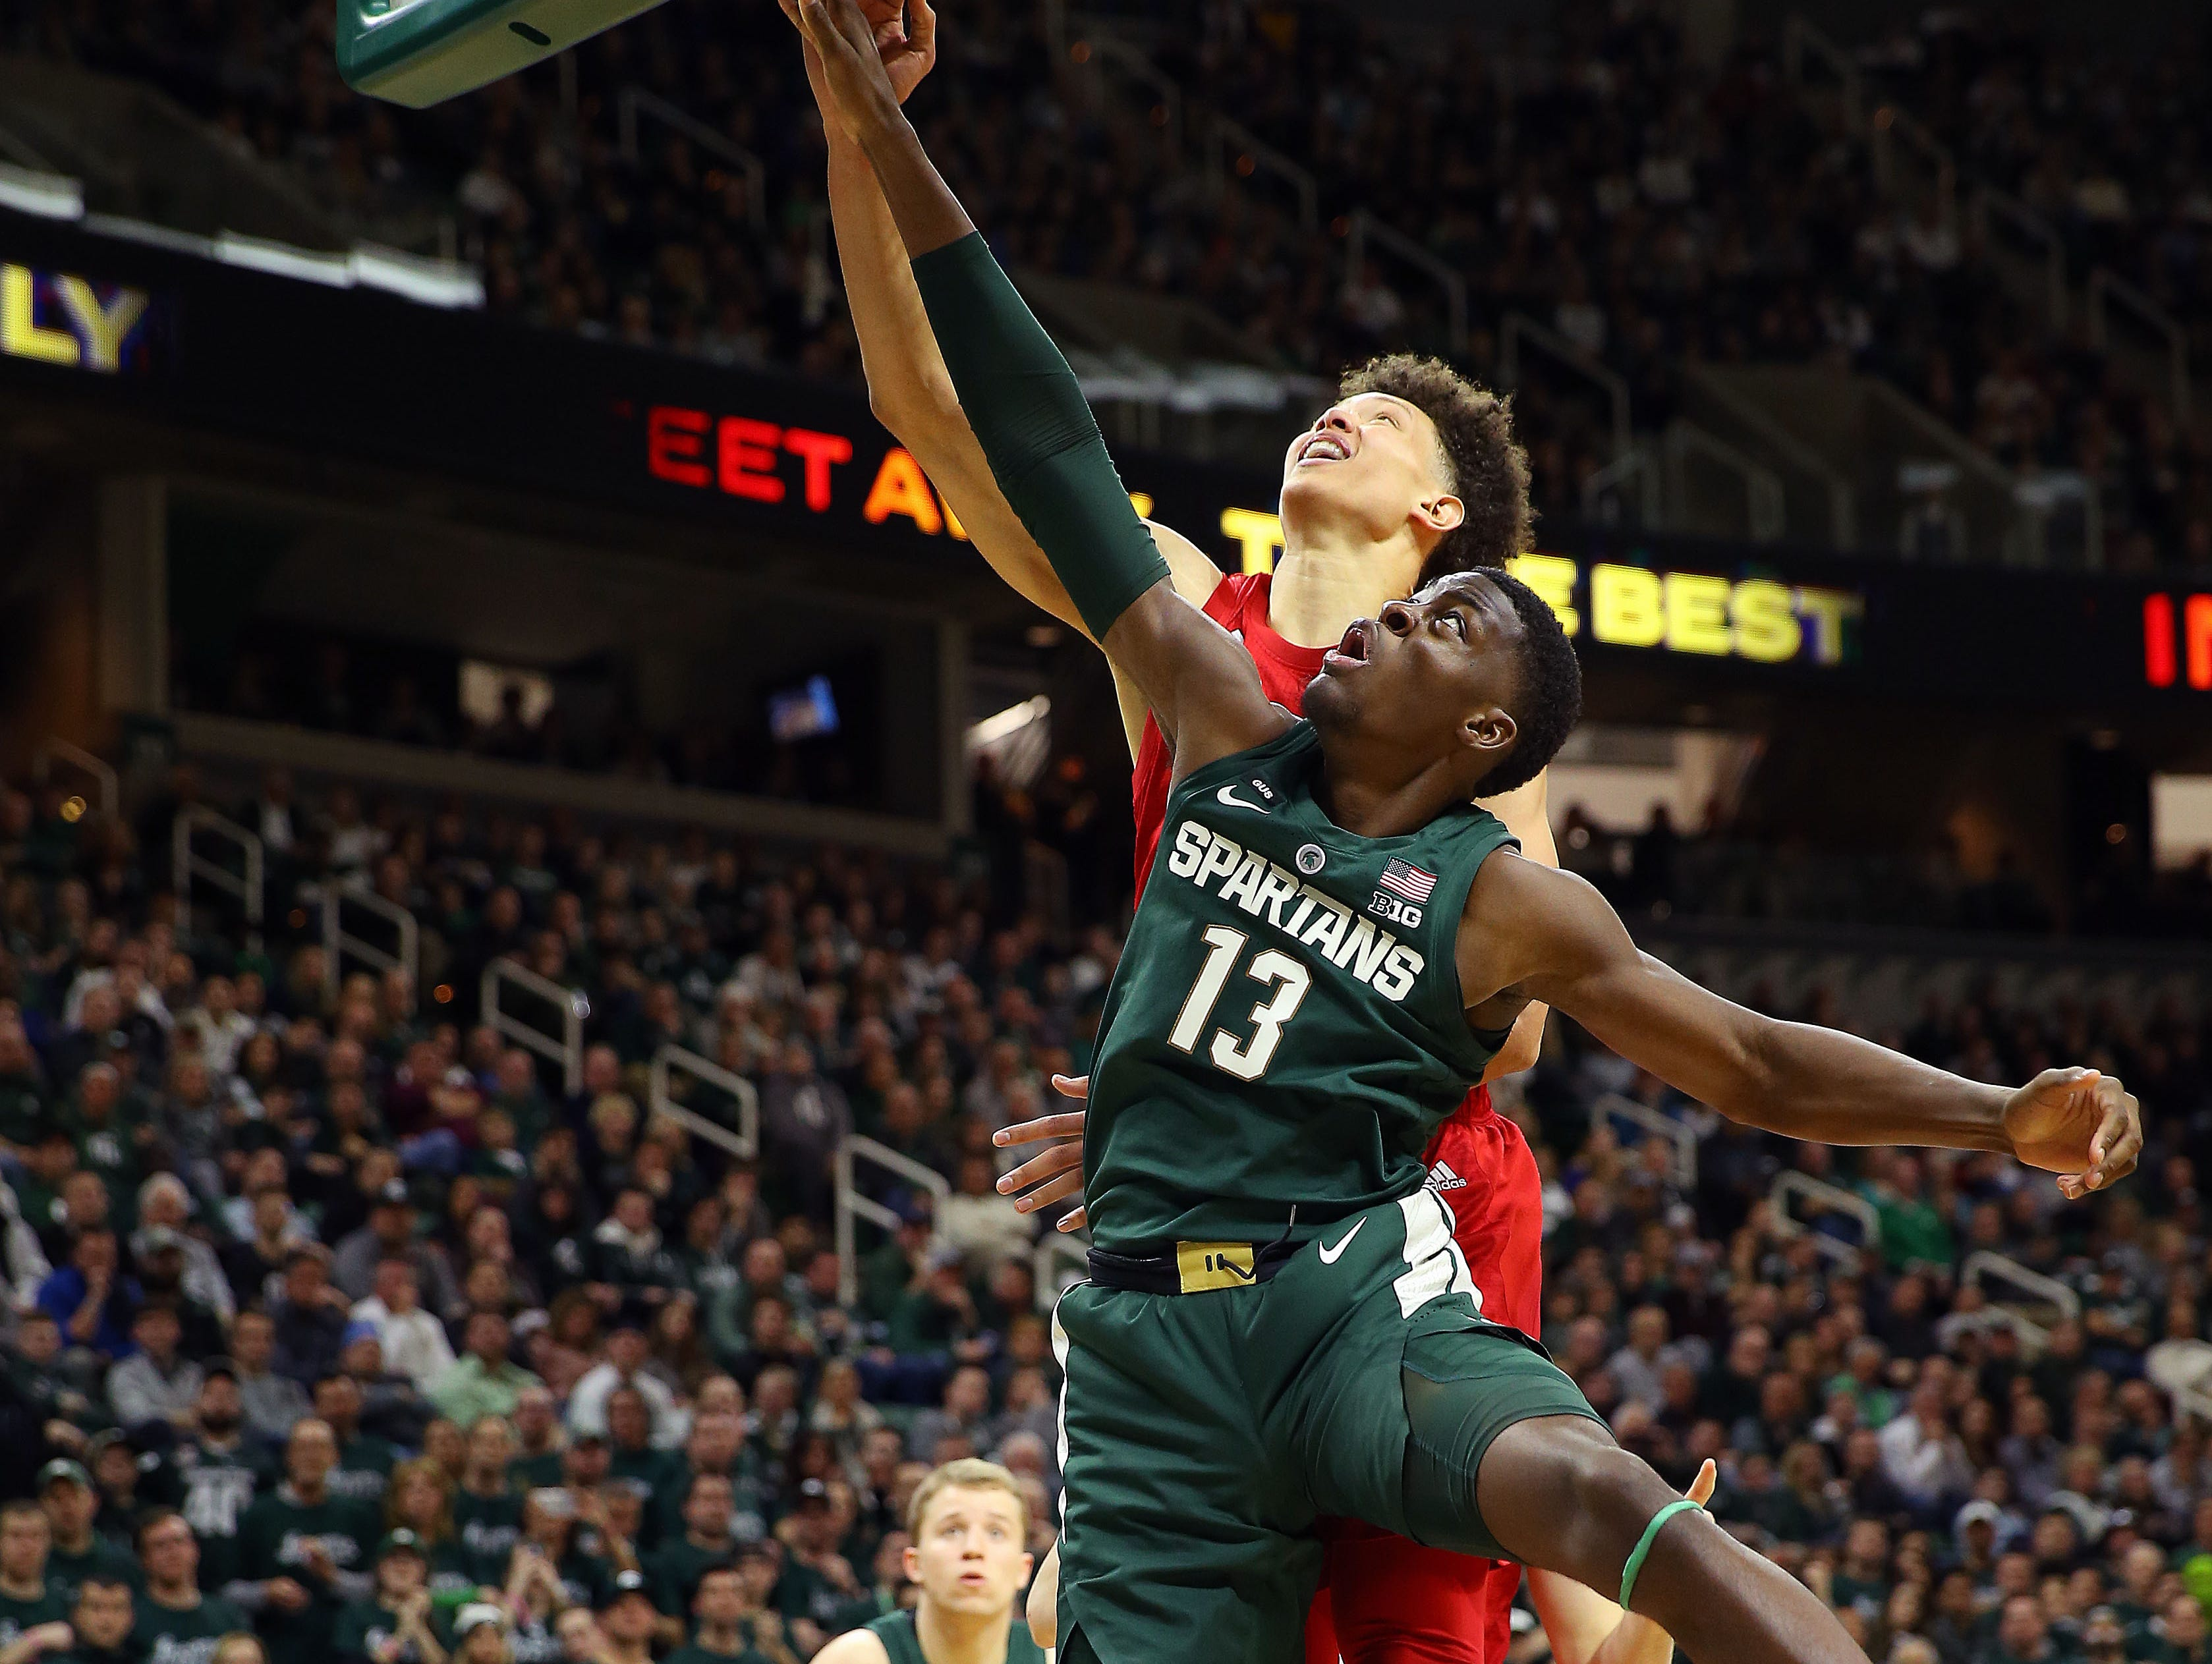 Mar 5, 2019; East Lansing, MI, USA; Michigan State Spartans forward Gabe Brown (13) lays the ball up in front of Nebraska Cornhuskers forward Isaiah Roby (15) during the second half at the Breslin Center. Mandatory Credit: Mike Carter-USA TODAY Sports